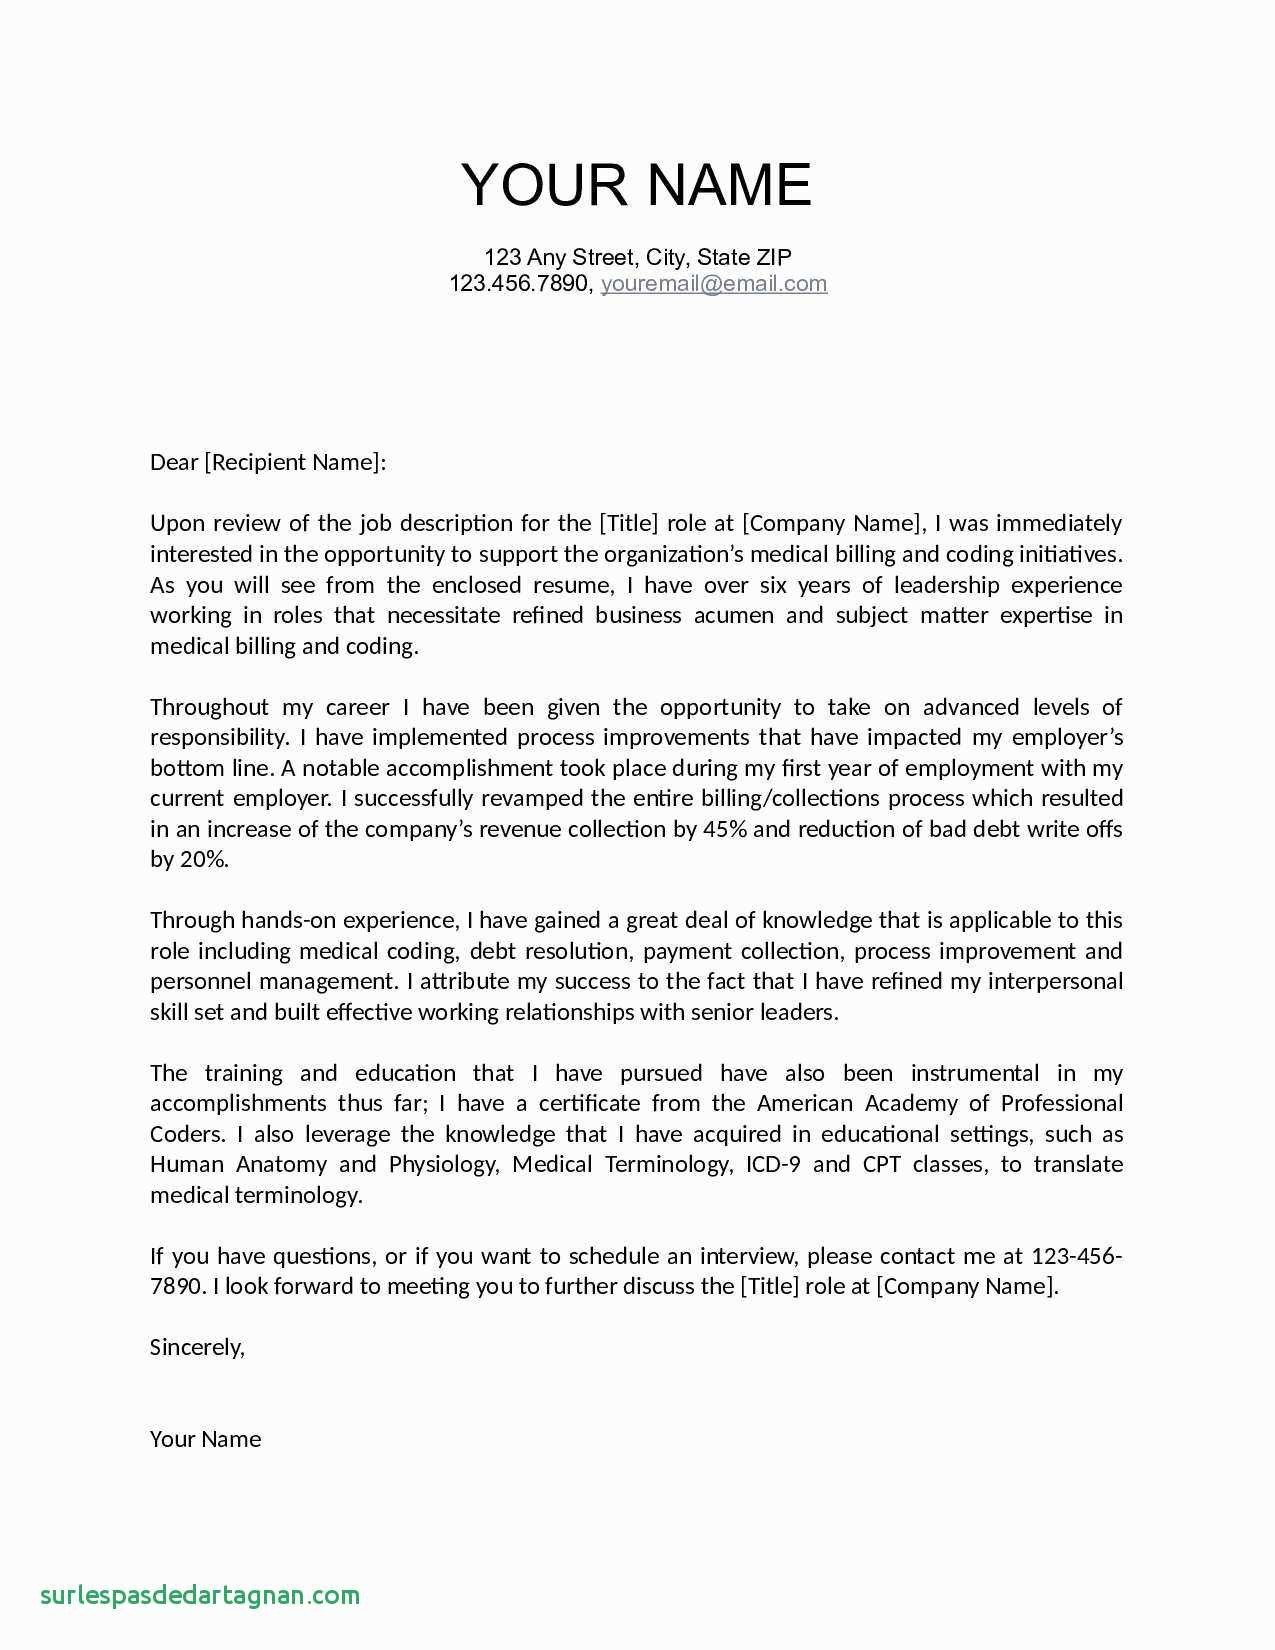 Free Demand Letter Template - Resume Writing Group Reviews Unique Fresh Job Fer Letter Template Us